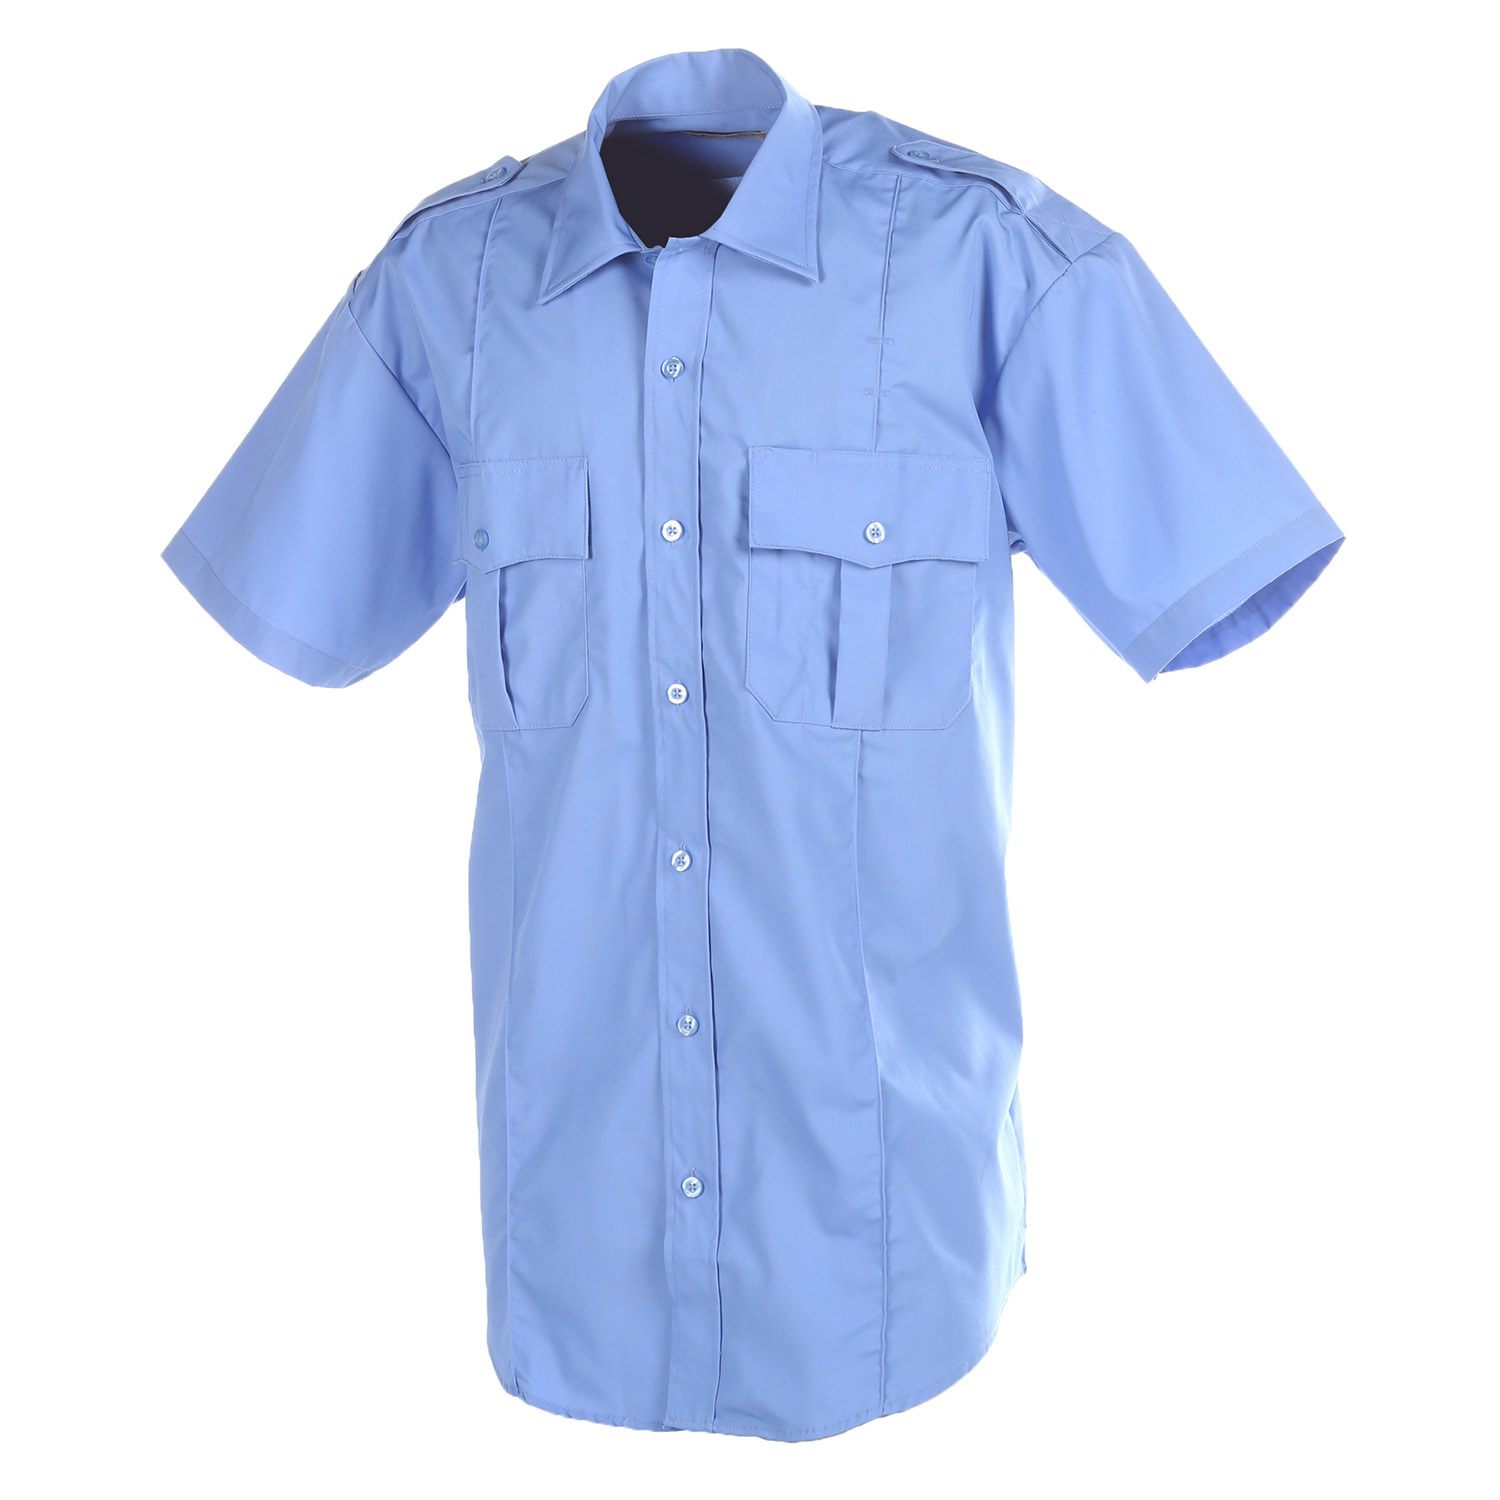 DutyPro Short Sleeve Poly Cotton Military Style Shirt